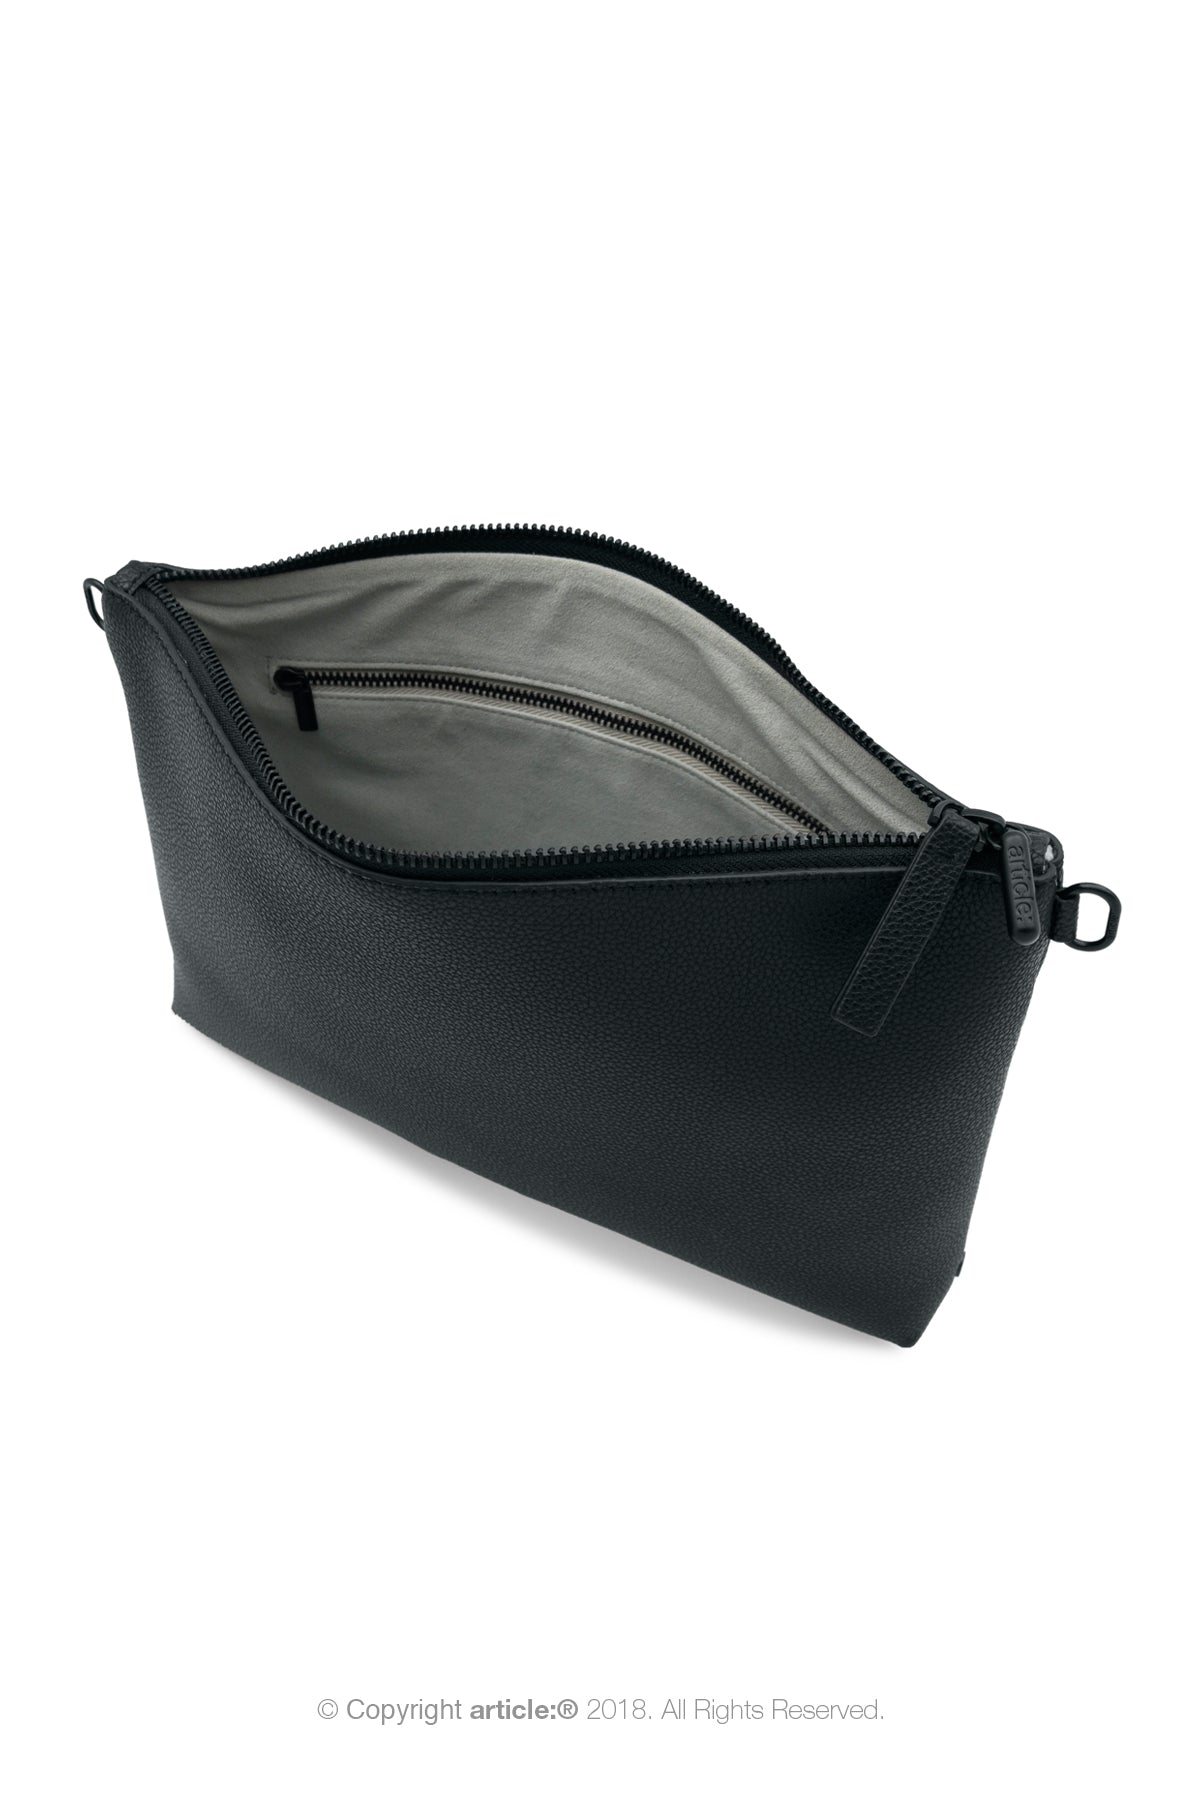 article: #073 Pochette Grande Gusset Men - Noir